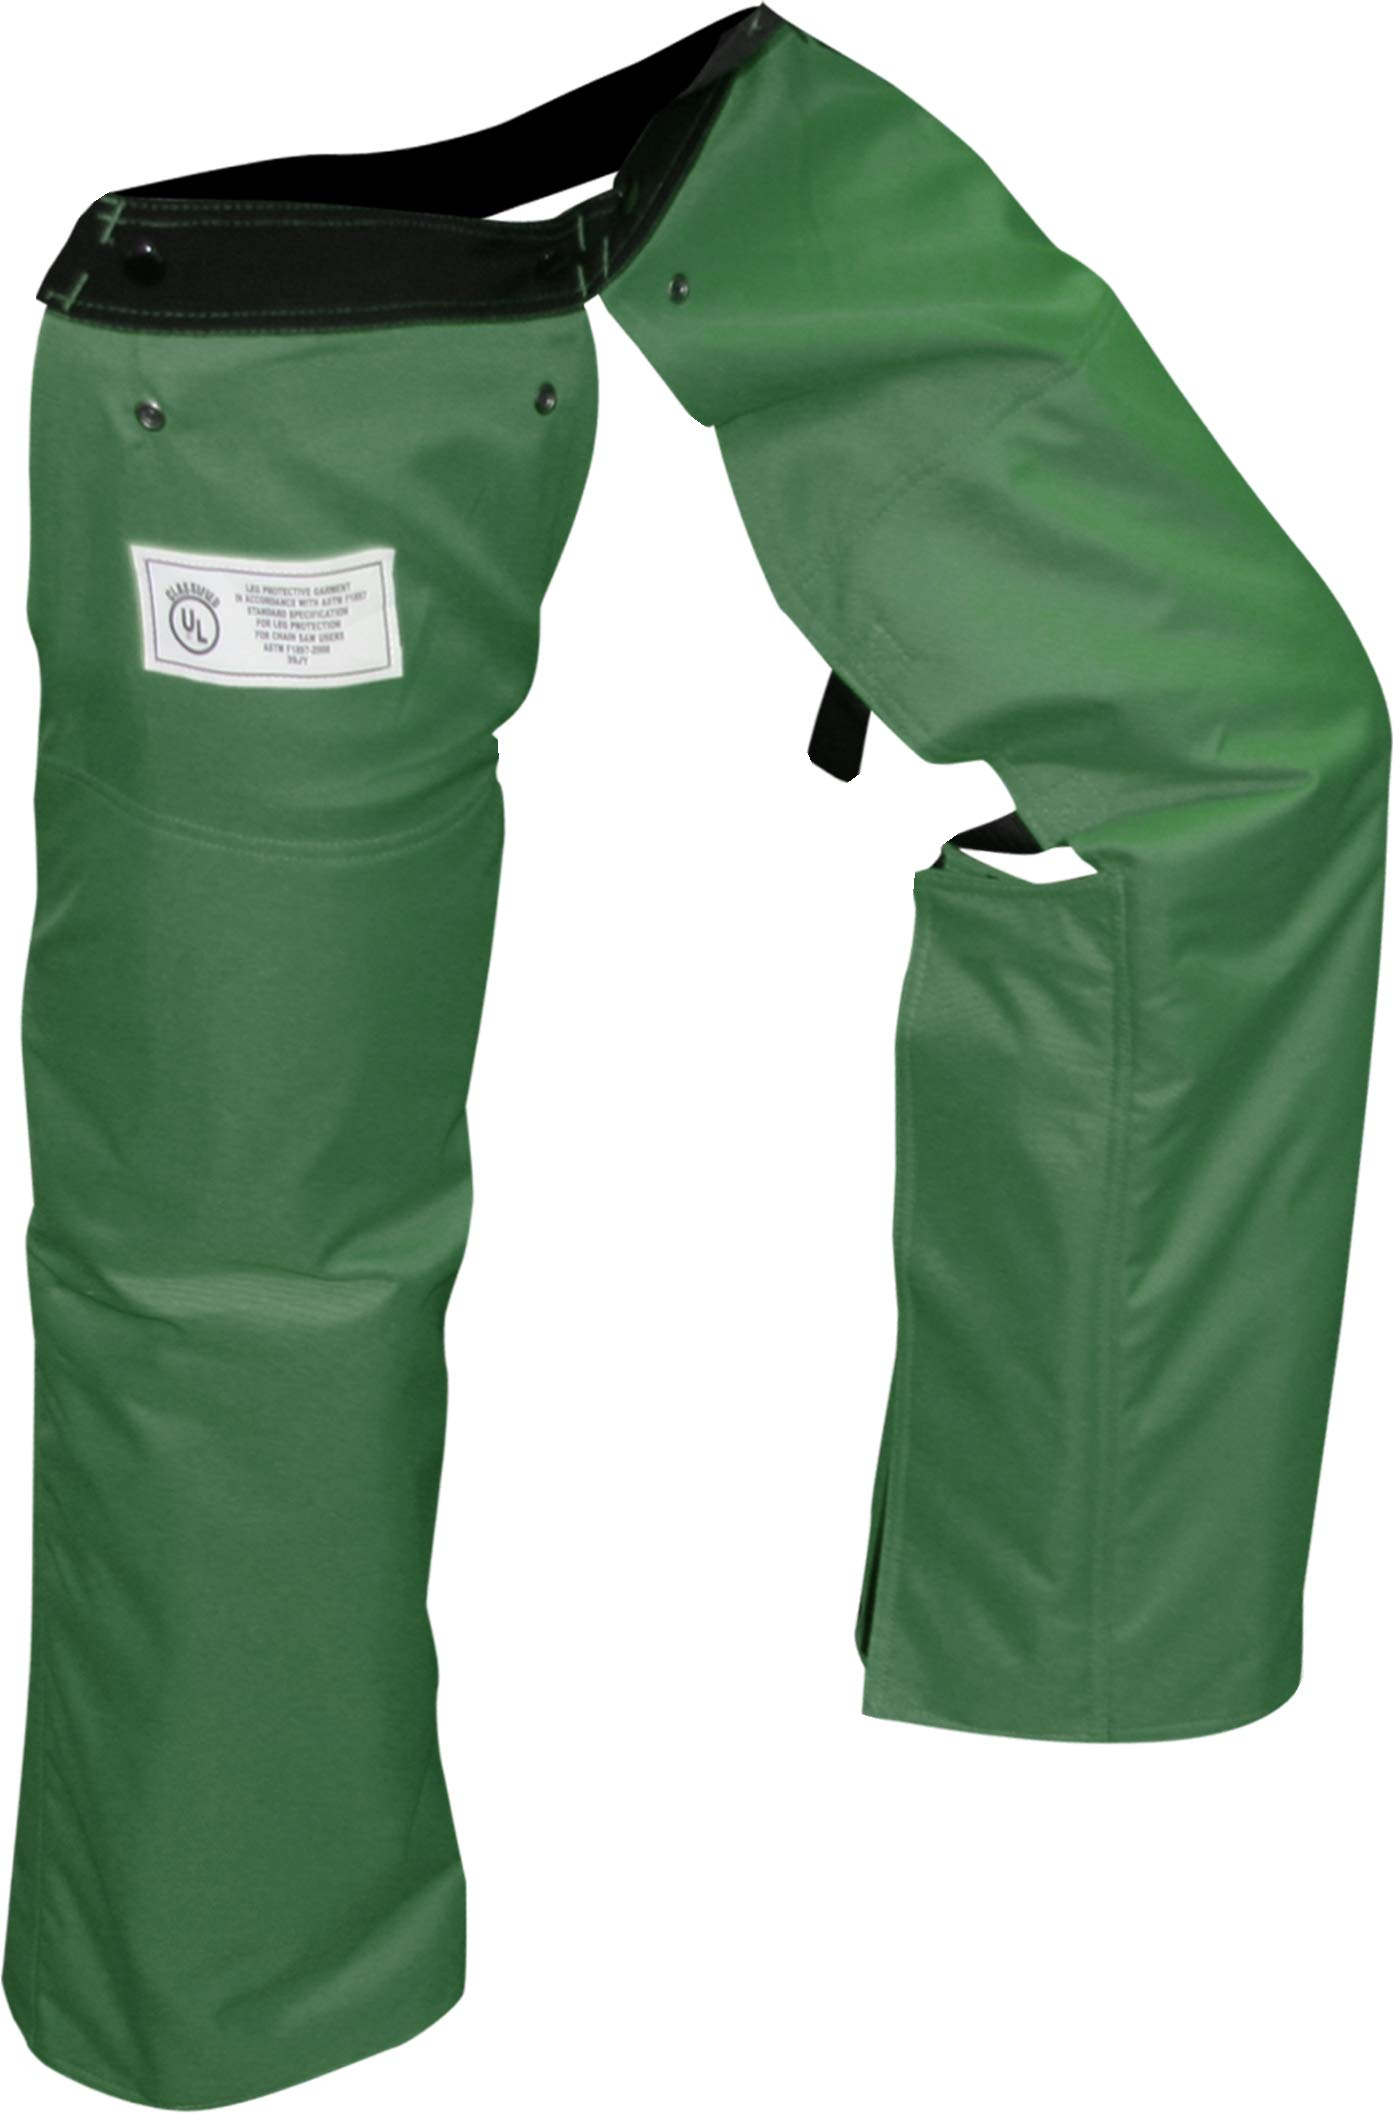 Forester Chainsaw Chaps Zipper Style Forest Green Long